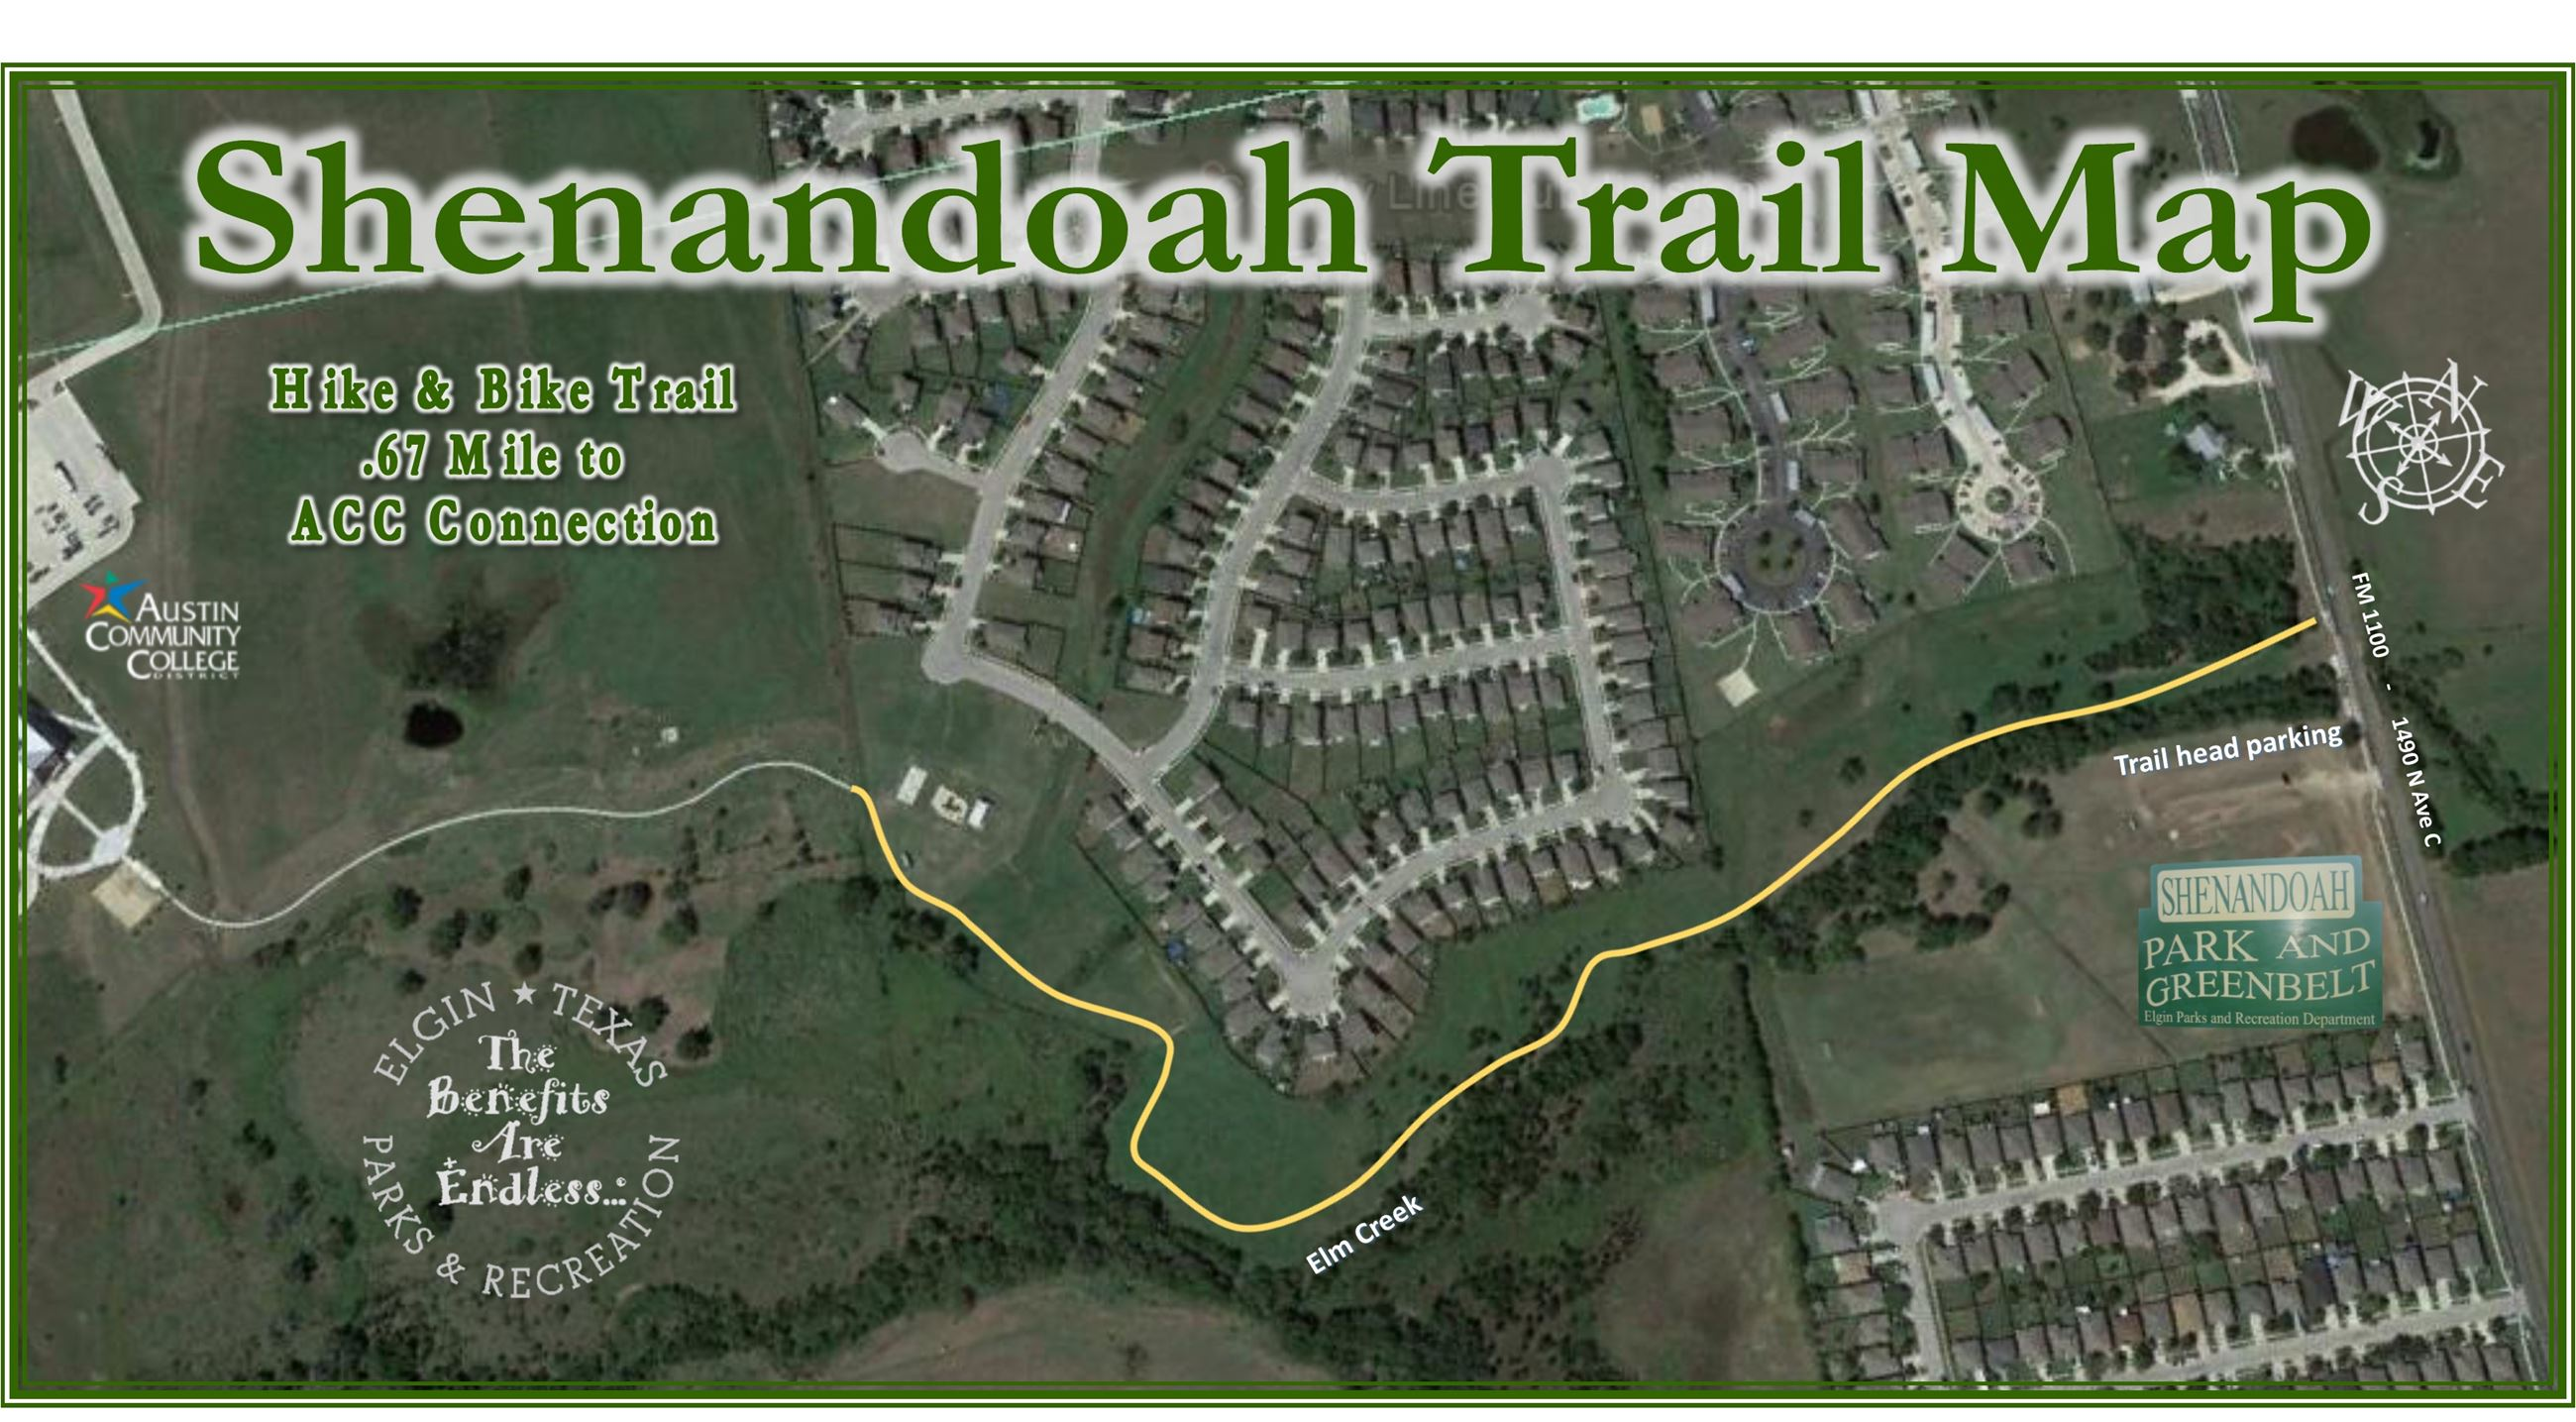 Shenandoah Trail Map